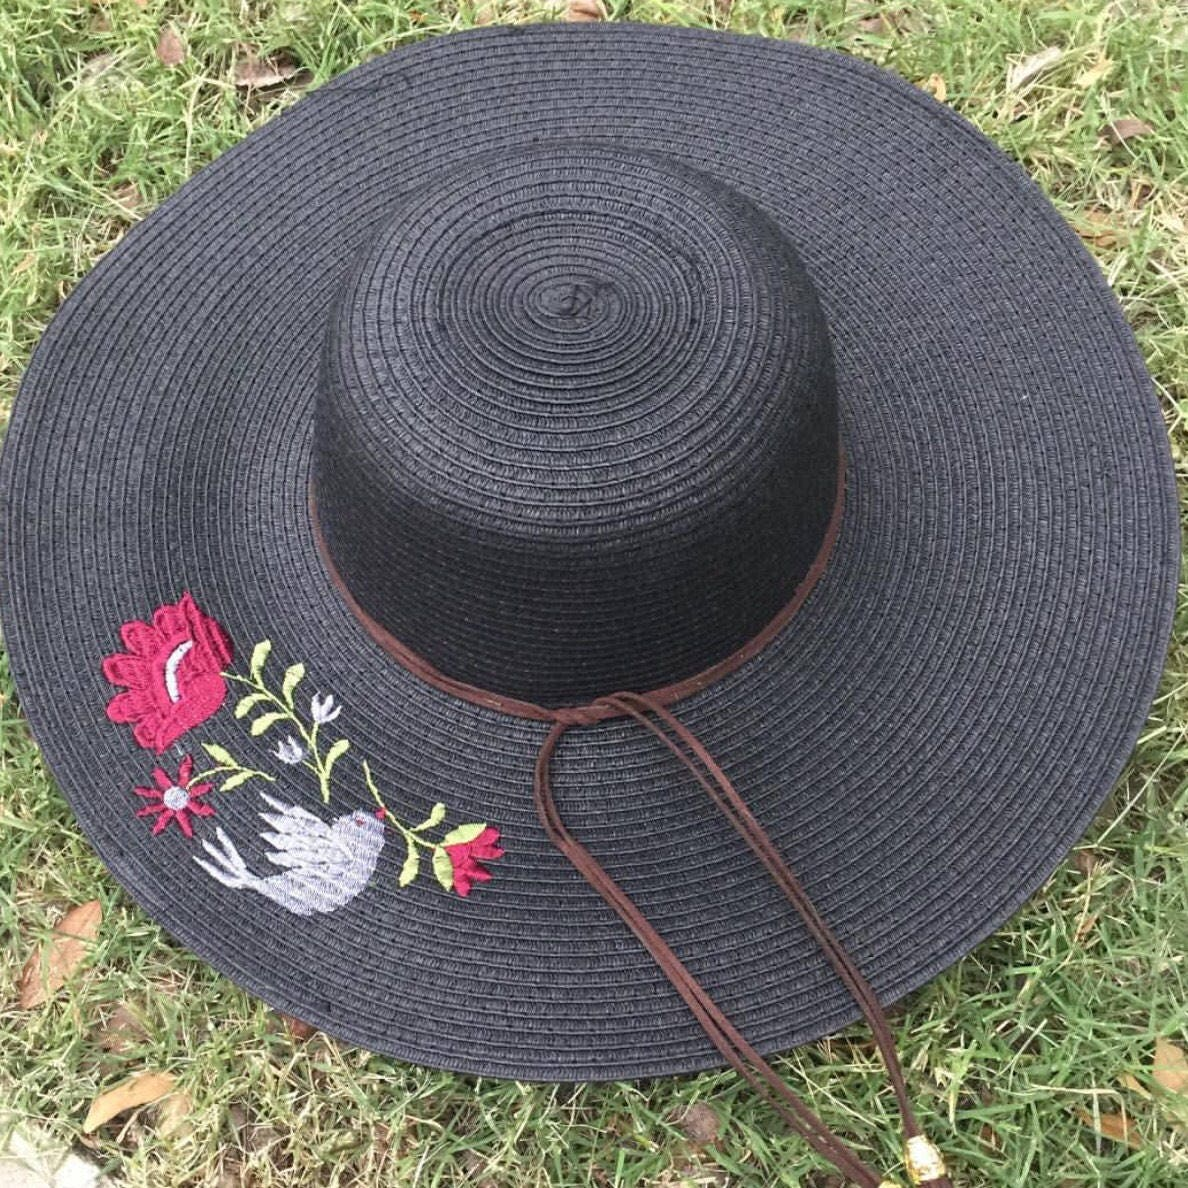 d0343bb3 Embroidered Straw Hat with Flowers